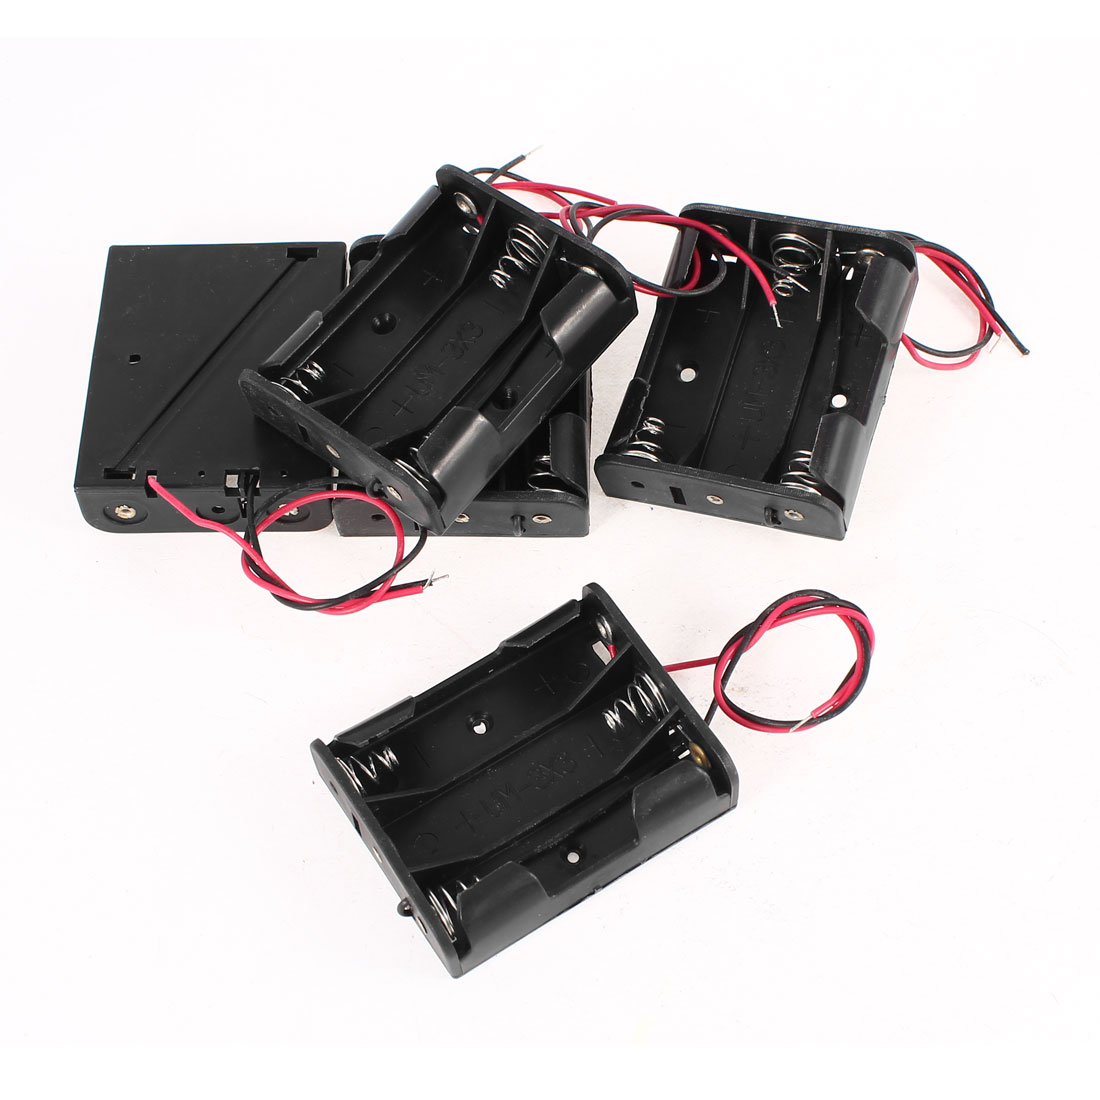 5 Pcs Black Red Wires Lead Plastic Shell Holder Case Box for 3 x 1.5V AA Battery